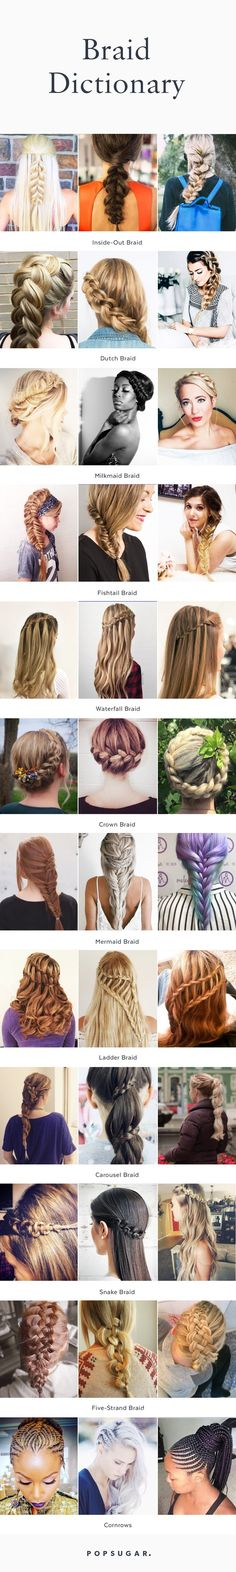 the guide for the perfect braid (or braids) this Summer. the guide for the perfect braid (or braids) this Summer. Pretty Hairstyles, Braided Hairstyles, Hair Day, Girl Hair, Braid Styles, Hair Designs, Hair Looks, Hair Inspiration, Curly Hair Styles